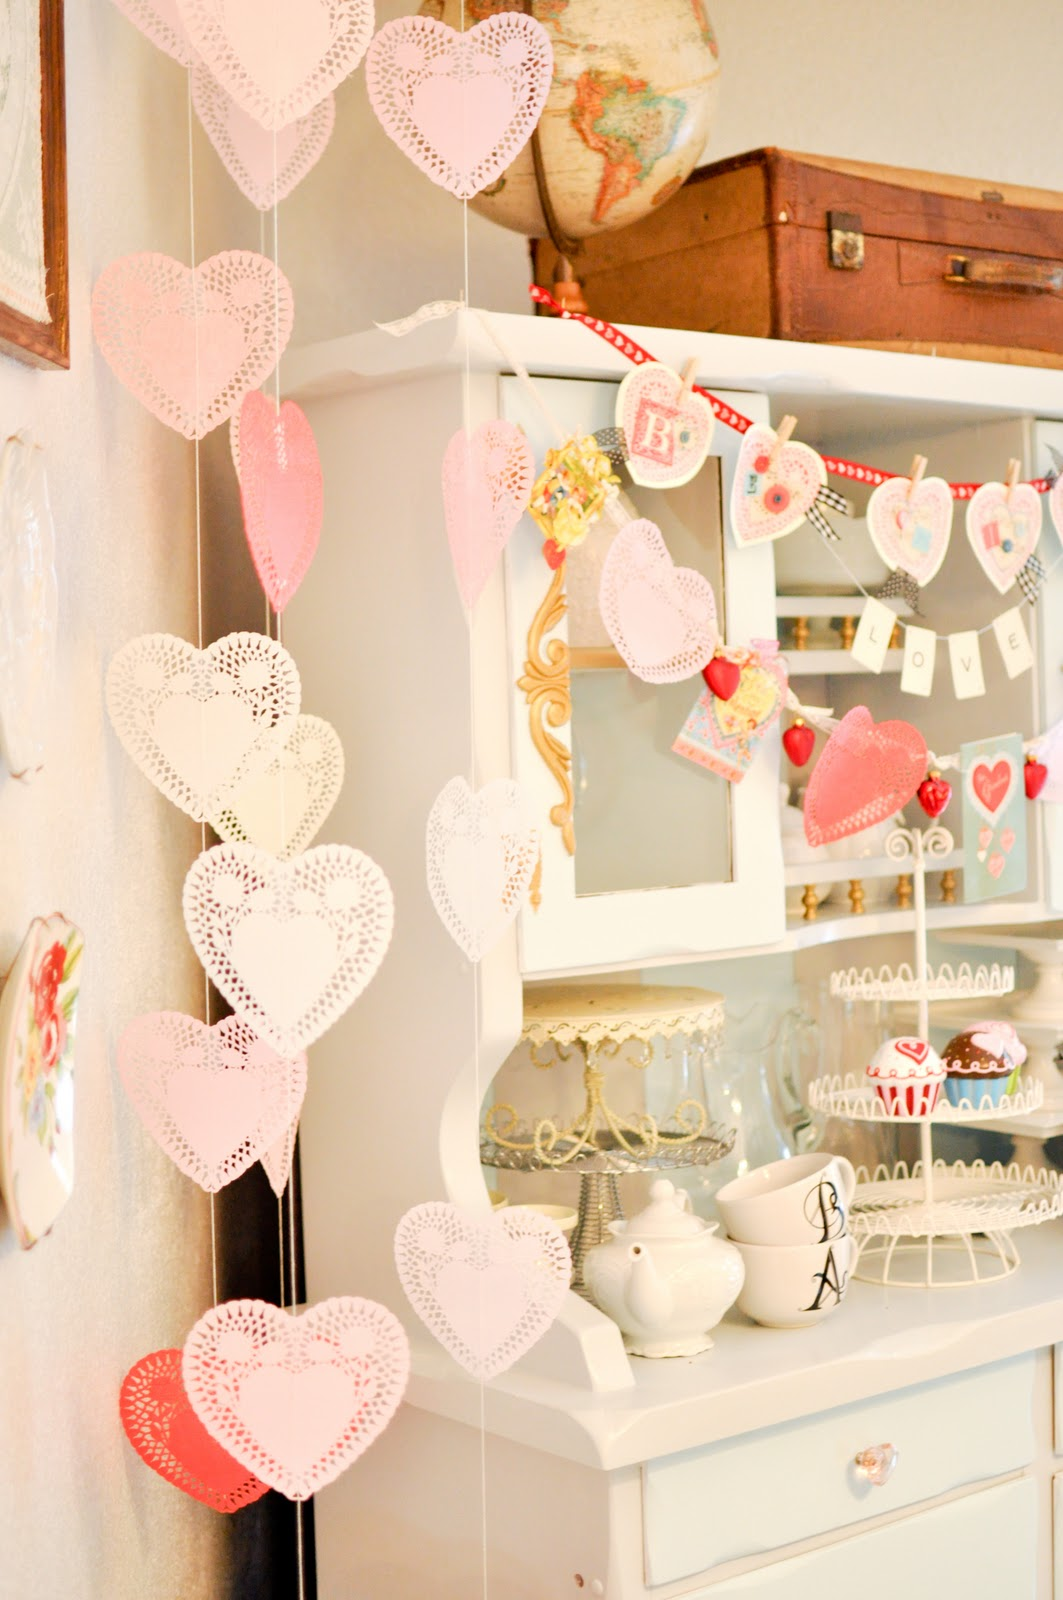 20 valentine 39 s day decorations ideas for your home for Valentine day at home